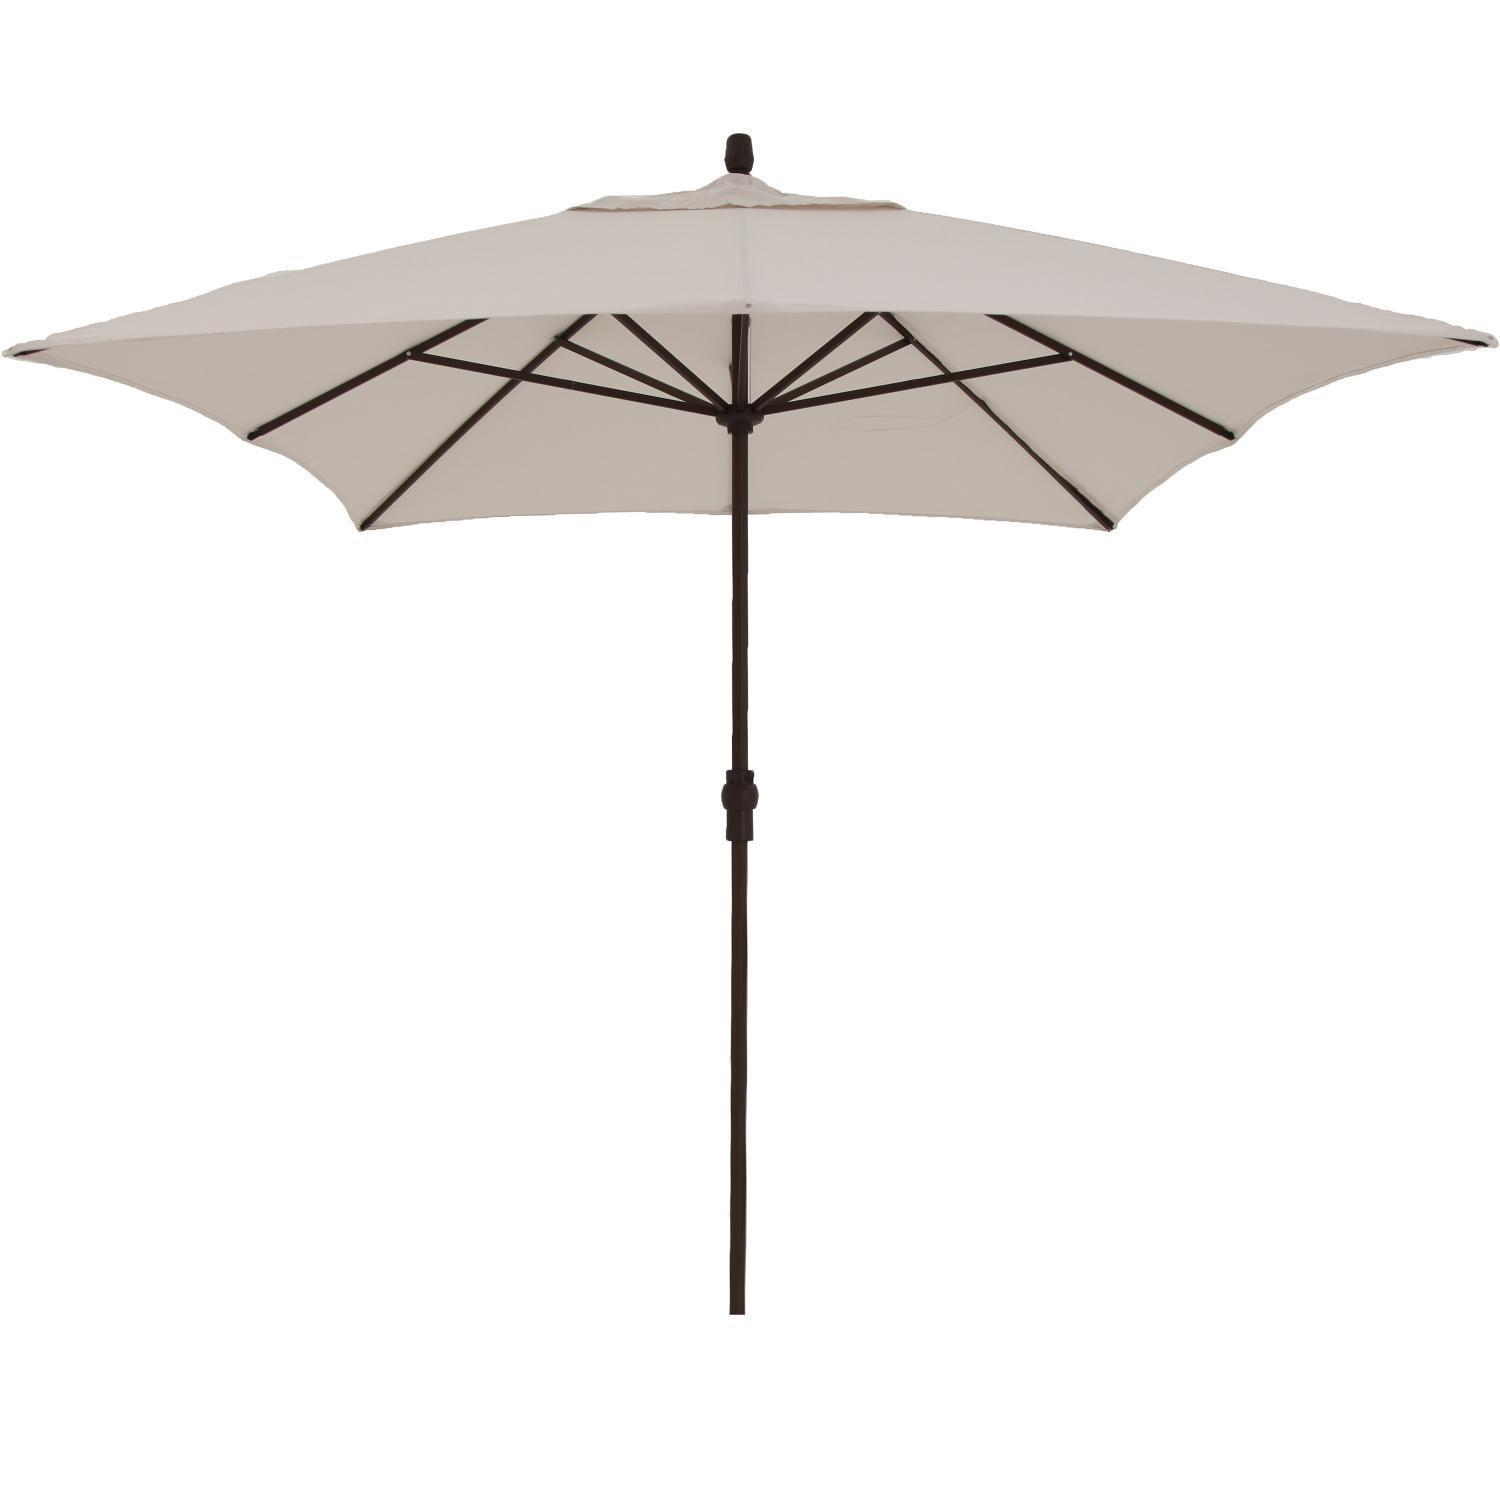 Simply Shade Solid Wheat Market 11 Ft Auto Tilt Round Patio Umbrella With Golden Spoted Black Aluminum Frame Lowes Com Patio Umbrella Patio Patio Umbrellas